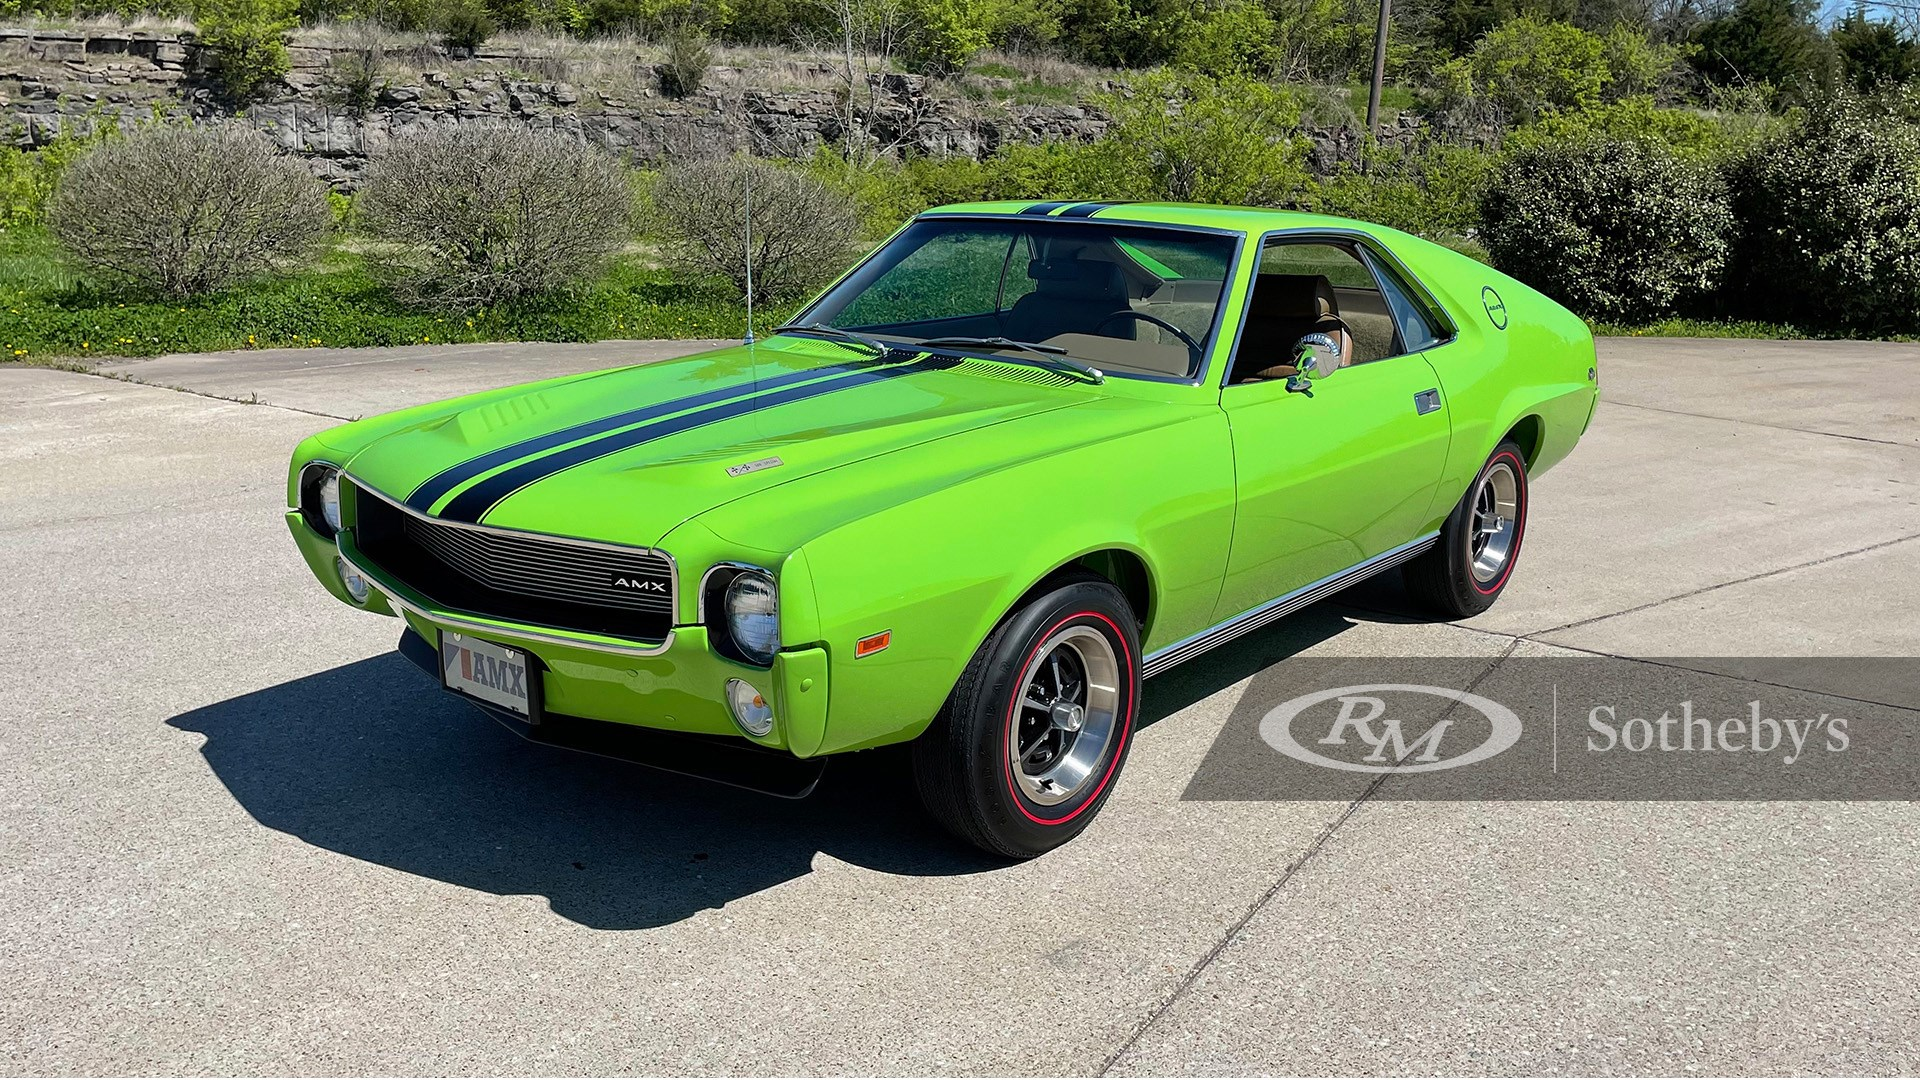 1969 AMC AMX 500 Special available at RM Sotheby's Online Only Open Roads April Auction 2021